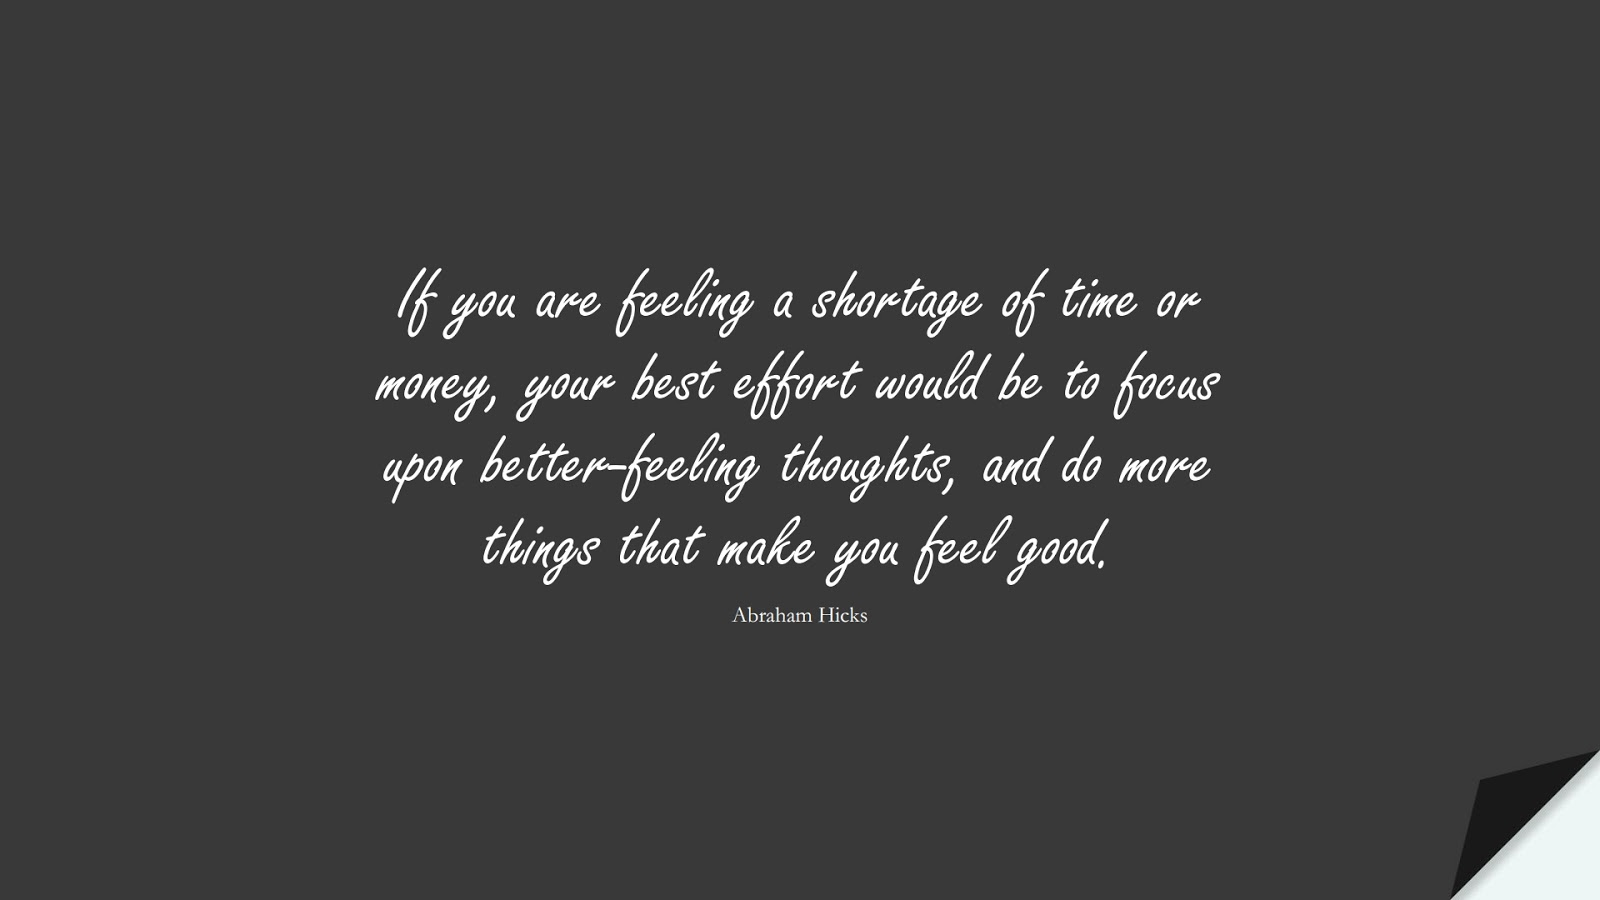 If you are feeling a shortage of time or money, your best effort would be to focus upon better-feeling thoughts, and do more things that make you feel good. (Abraham Hicks);  #MoneyQuotes